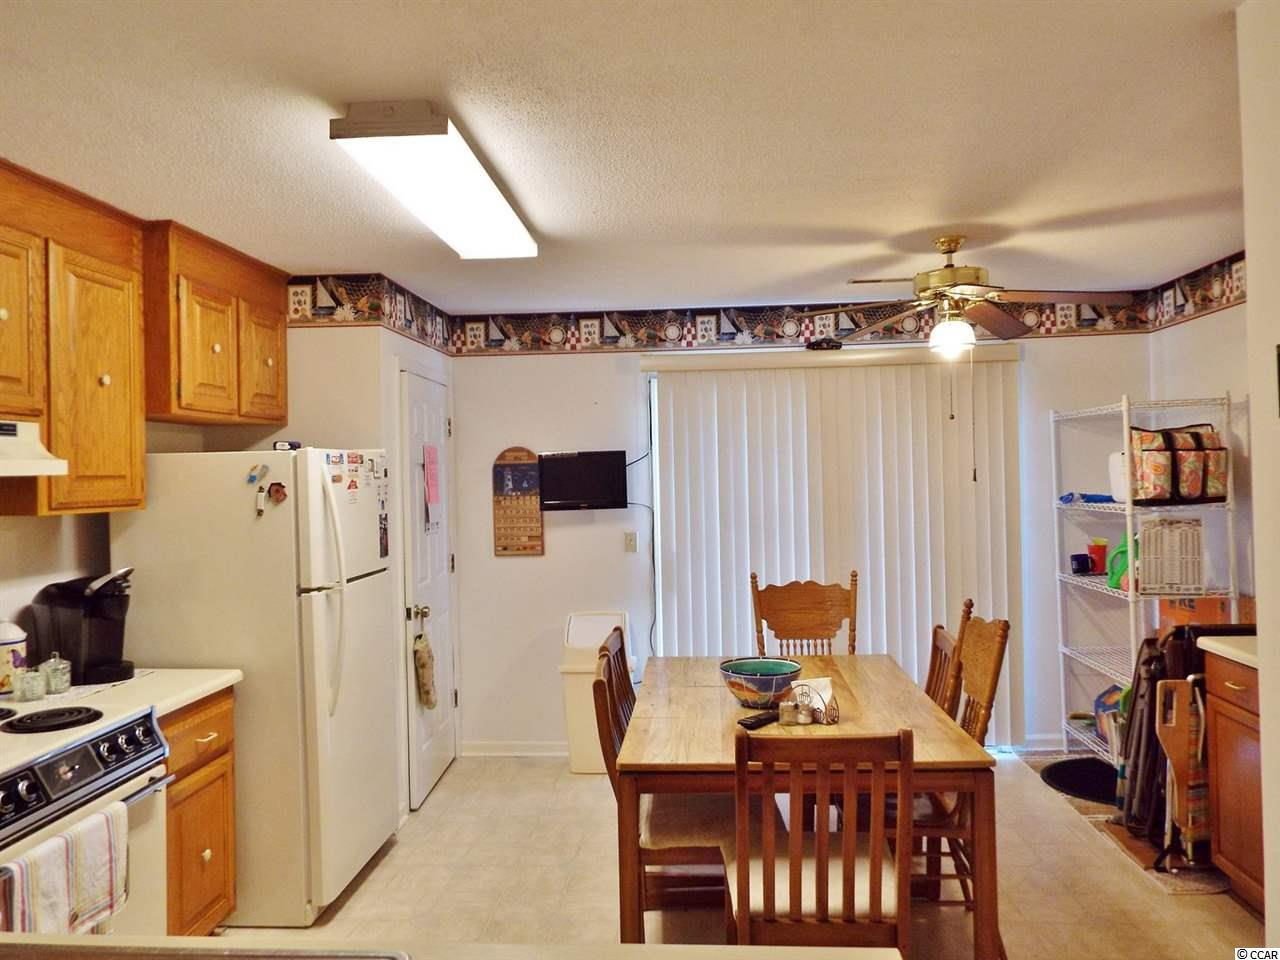 2 bedroom  WINDS, THE condo for sale